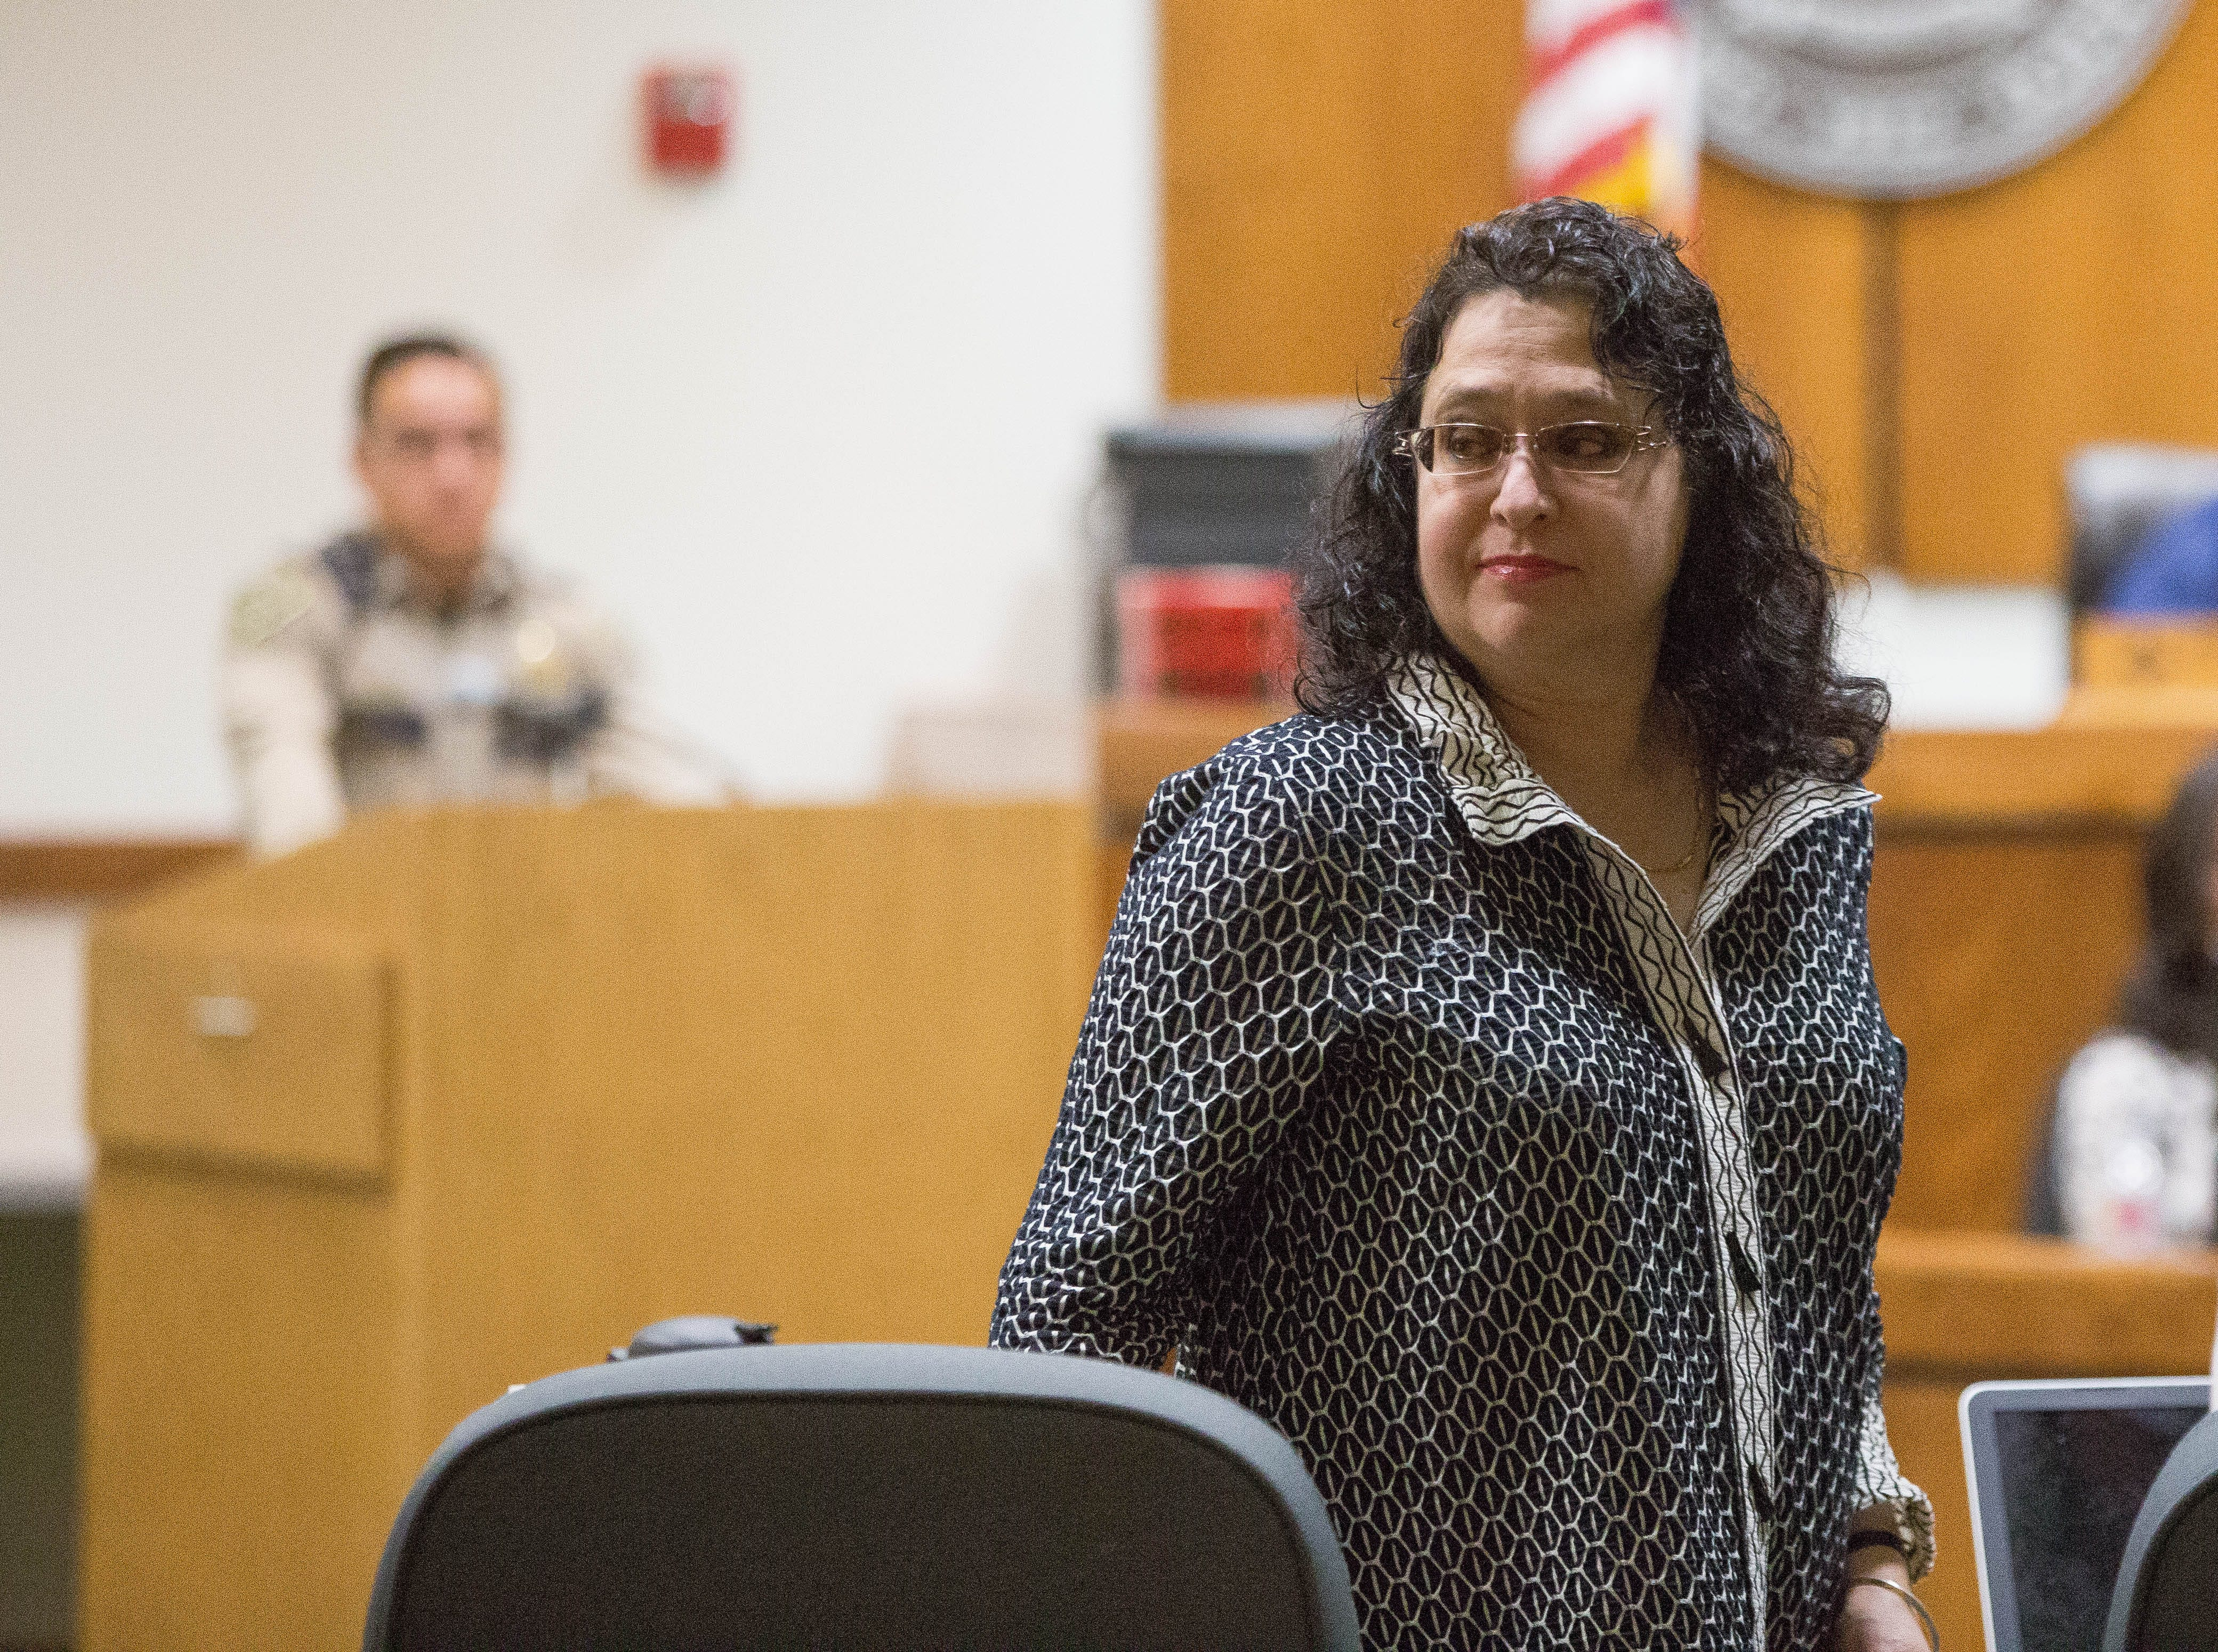 District Attorney Estevez back in court for hearing before trial on traffic-stop charges | Las Cruces Sun